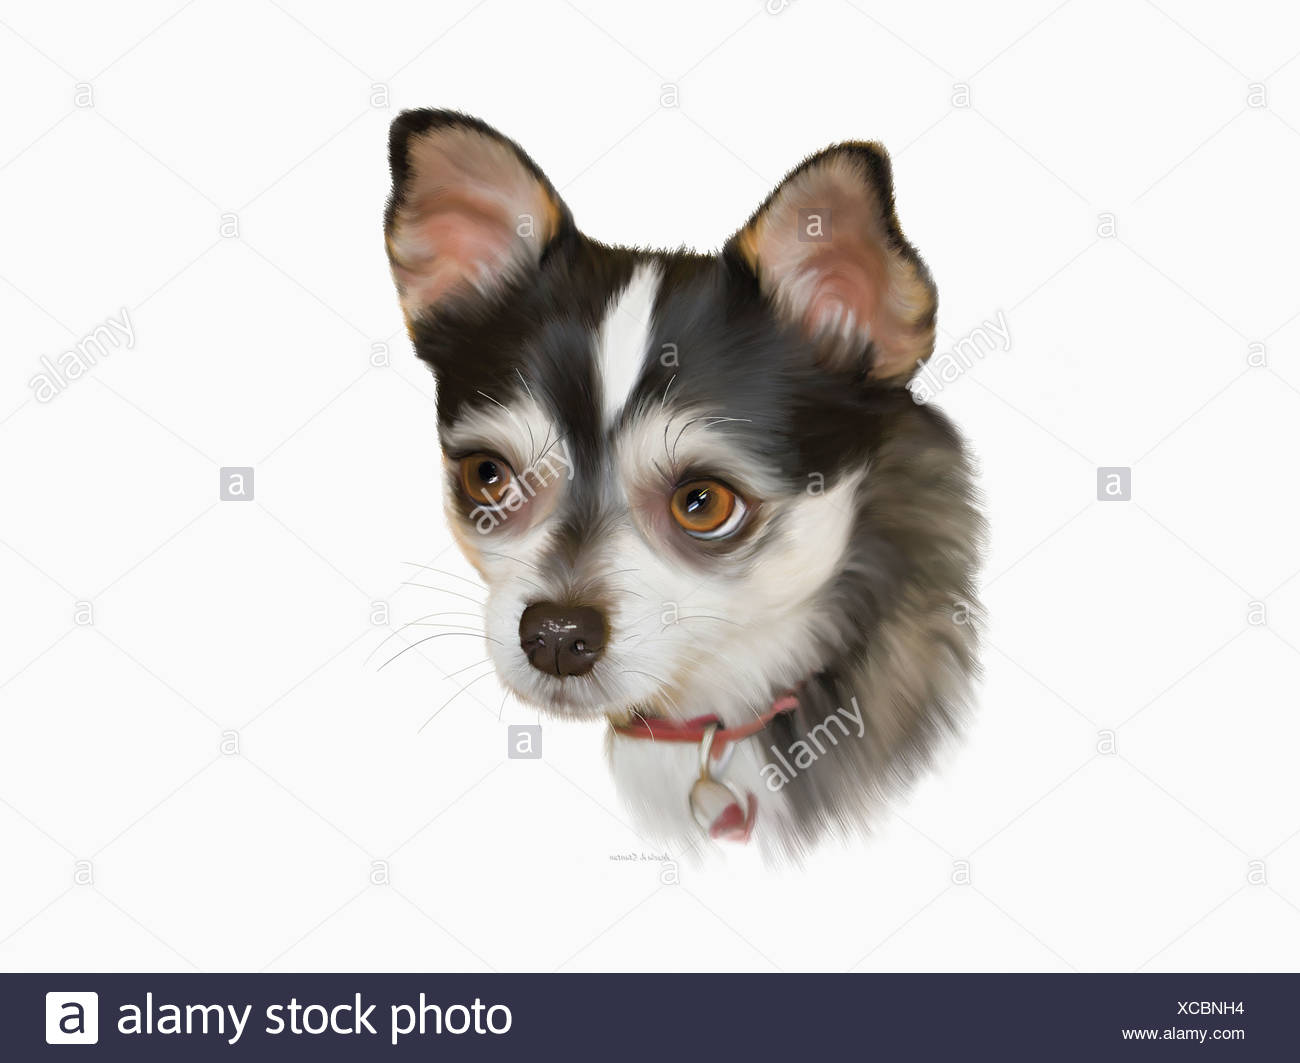 Computer Generated Portrait Of A Dog - Stock Image